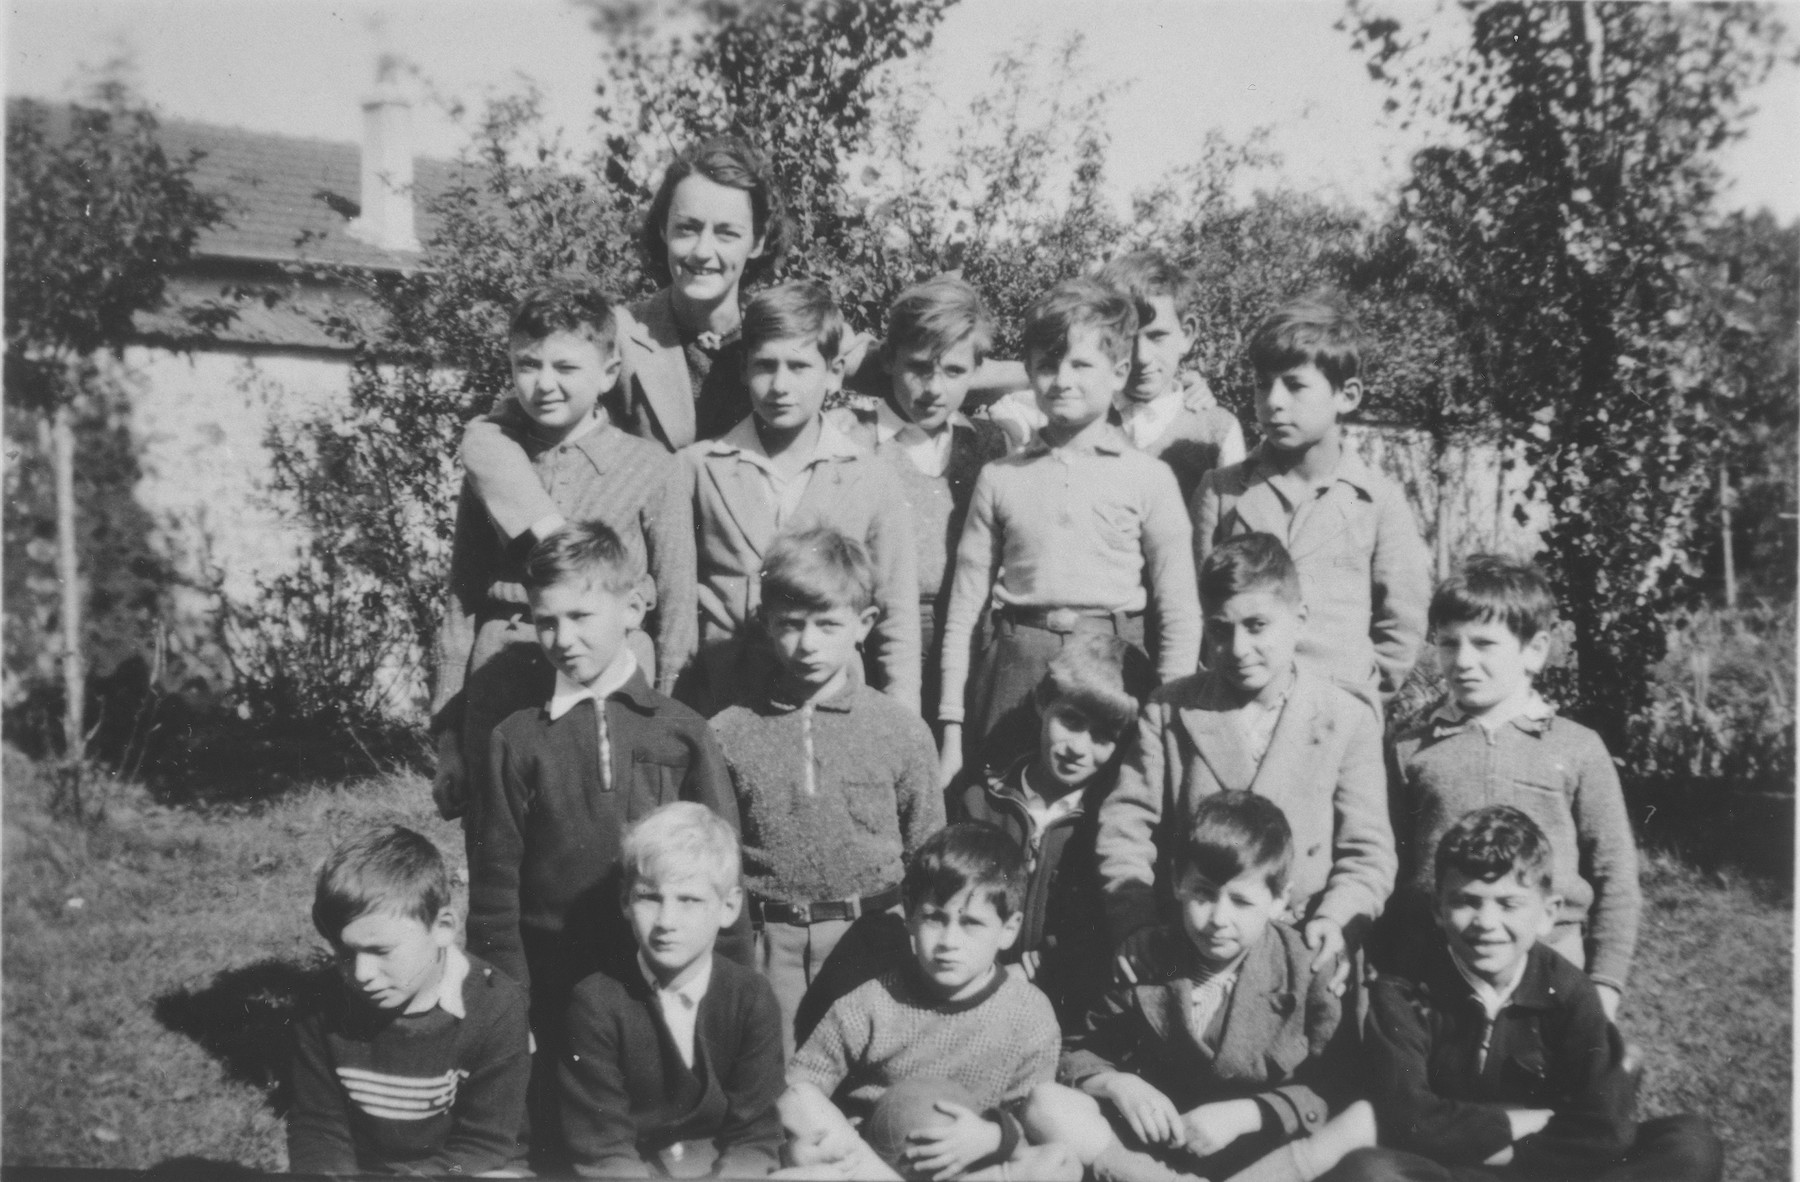 Raymonde Sauviac, a teacher at the Quincy children's home, poses with a group of Jewish refugee boys who arrived on a Kindertransport from Germany.  Sauviac was later recognized by Yad Vashem as one of the Righteous Among the Nations for her role in rescue efforts in France.  Pictured in the front row from left to right are:  H. Hoffenstandt, R. Moratz, W. Gossels and W. Grajonza.  Second row: K. Wolffberg, N. Bikales, S. Stueck, E. Cosmann and H. Oberniker.  Third row: W. Goldschmidt, G. Glass, H. Kreft, A. Marcuse, E. Zwirn and B. Friedlander.